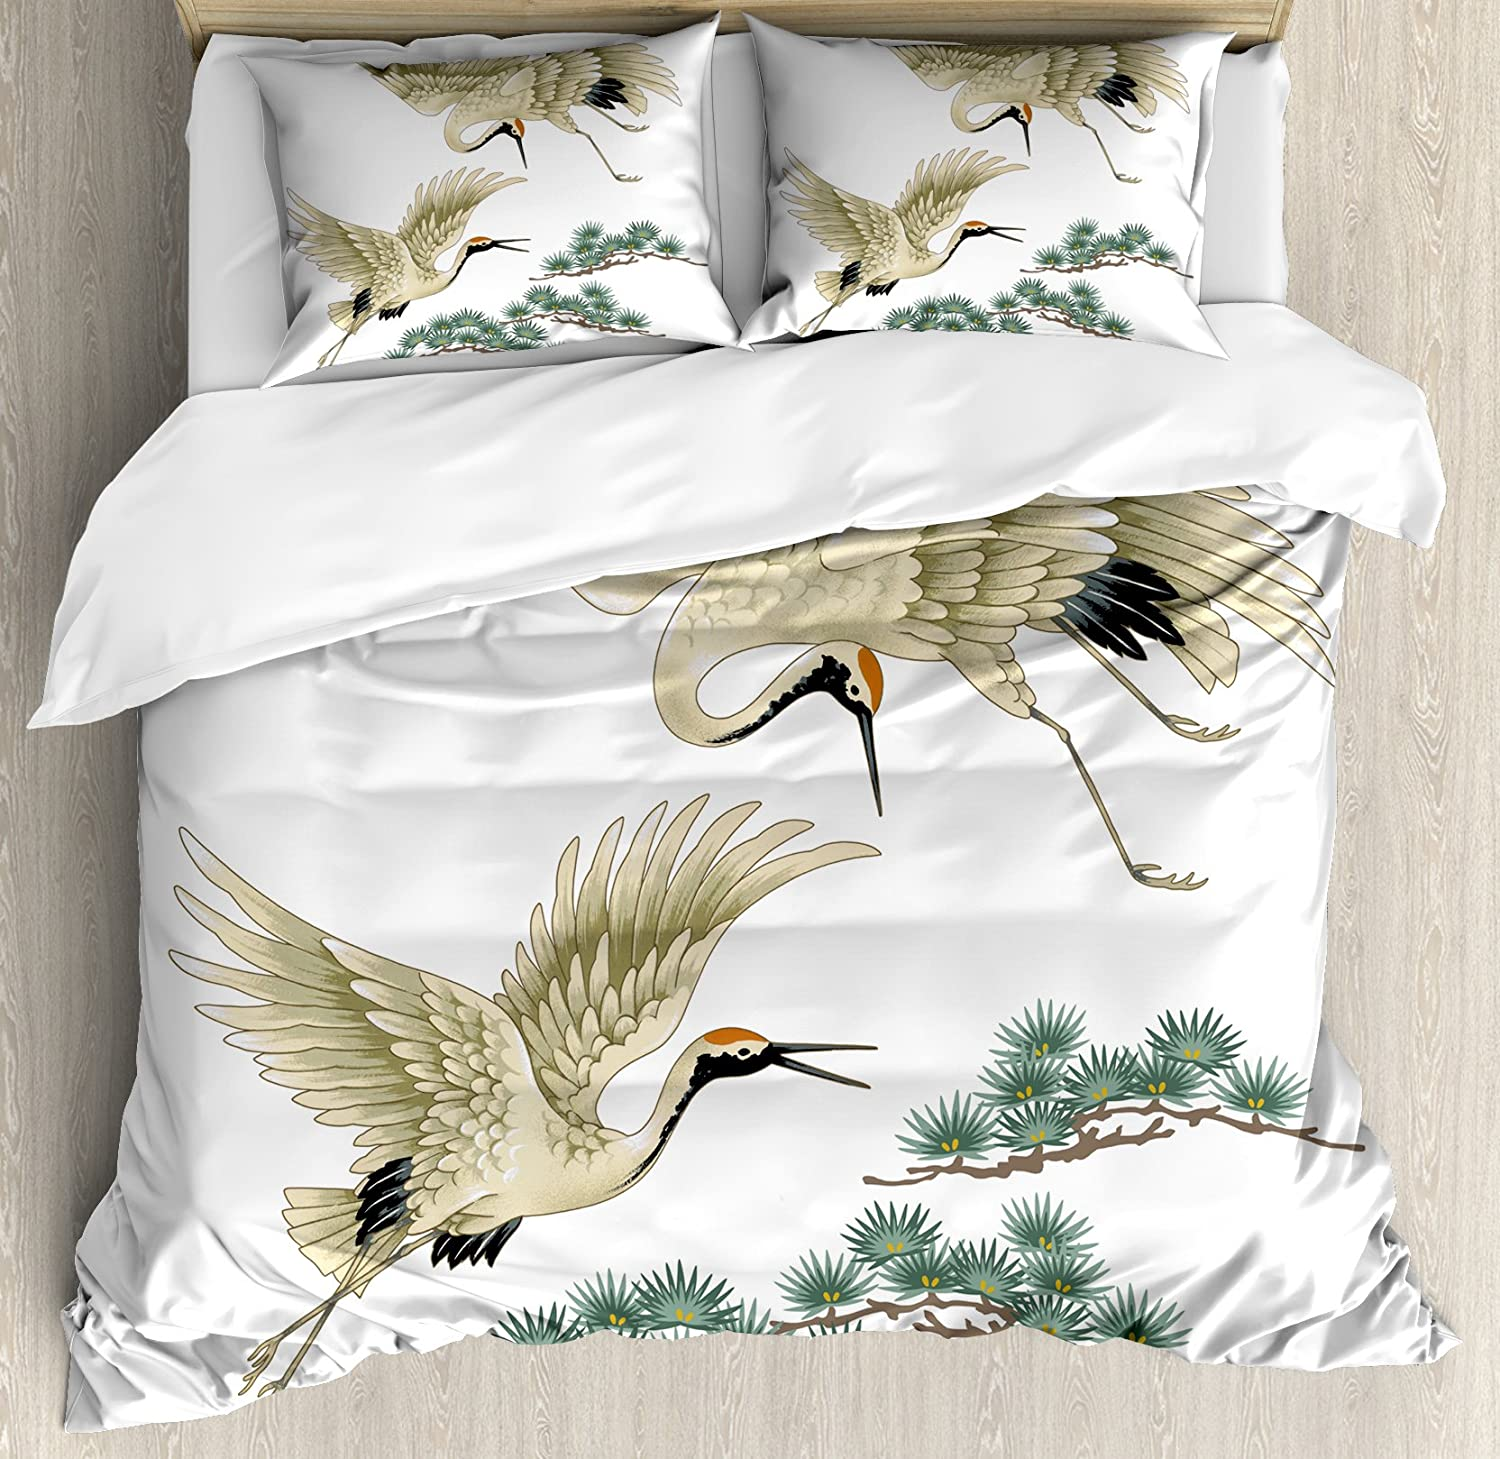 Lunarable Bird Duvet Cover Set, 2 Japanese Cranes Flying Traditional Painting Style Far Eastern Illustration, Decorative 3 Piece Bedding Set with 2 Pillow Shams, King Size, Black Ivory